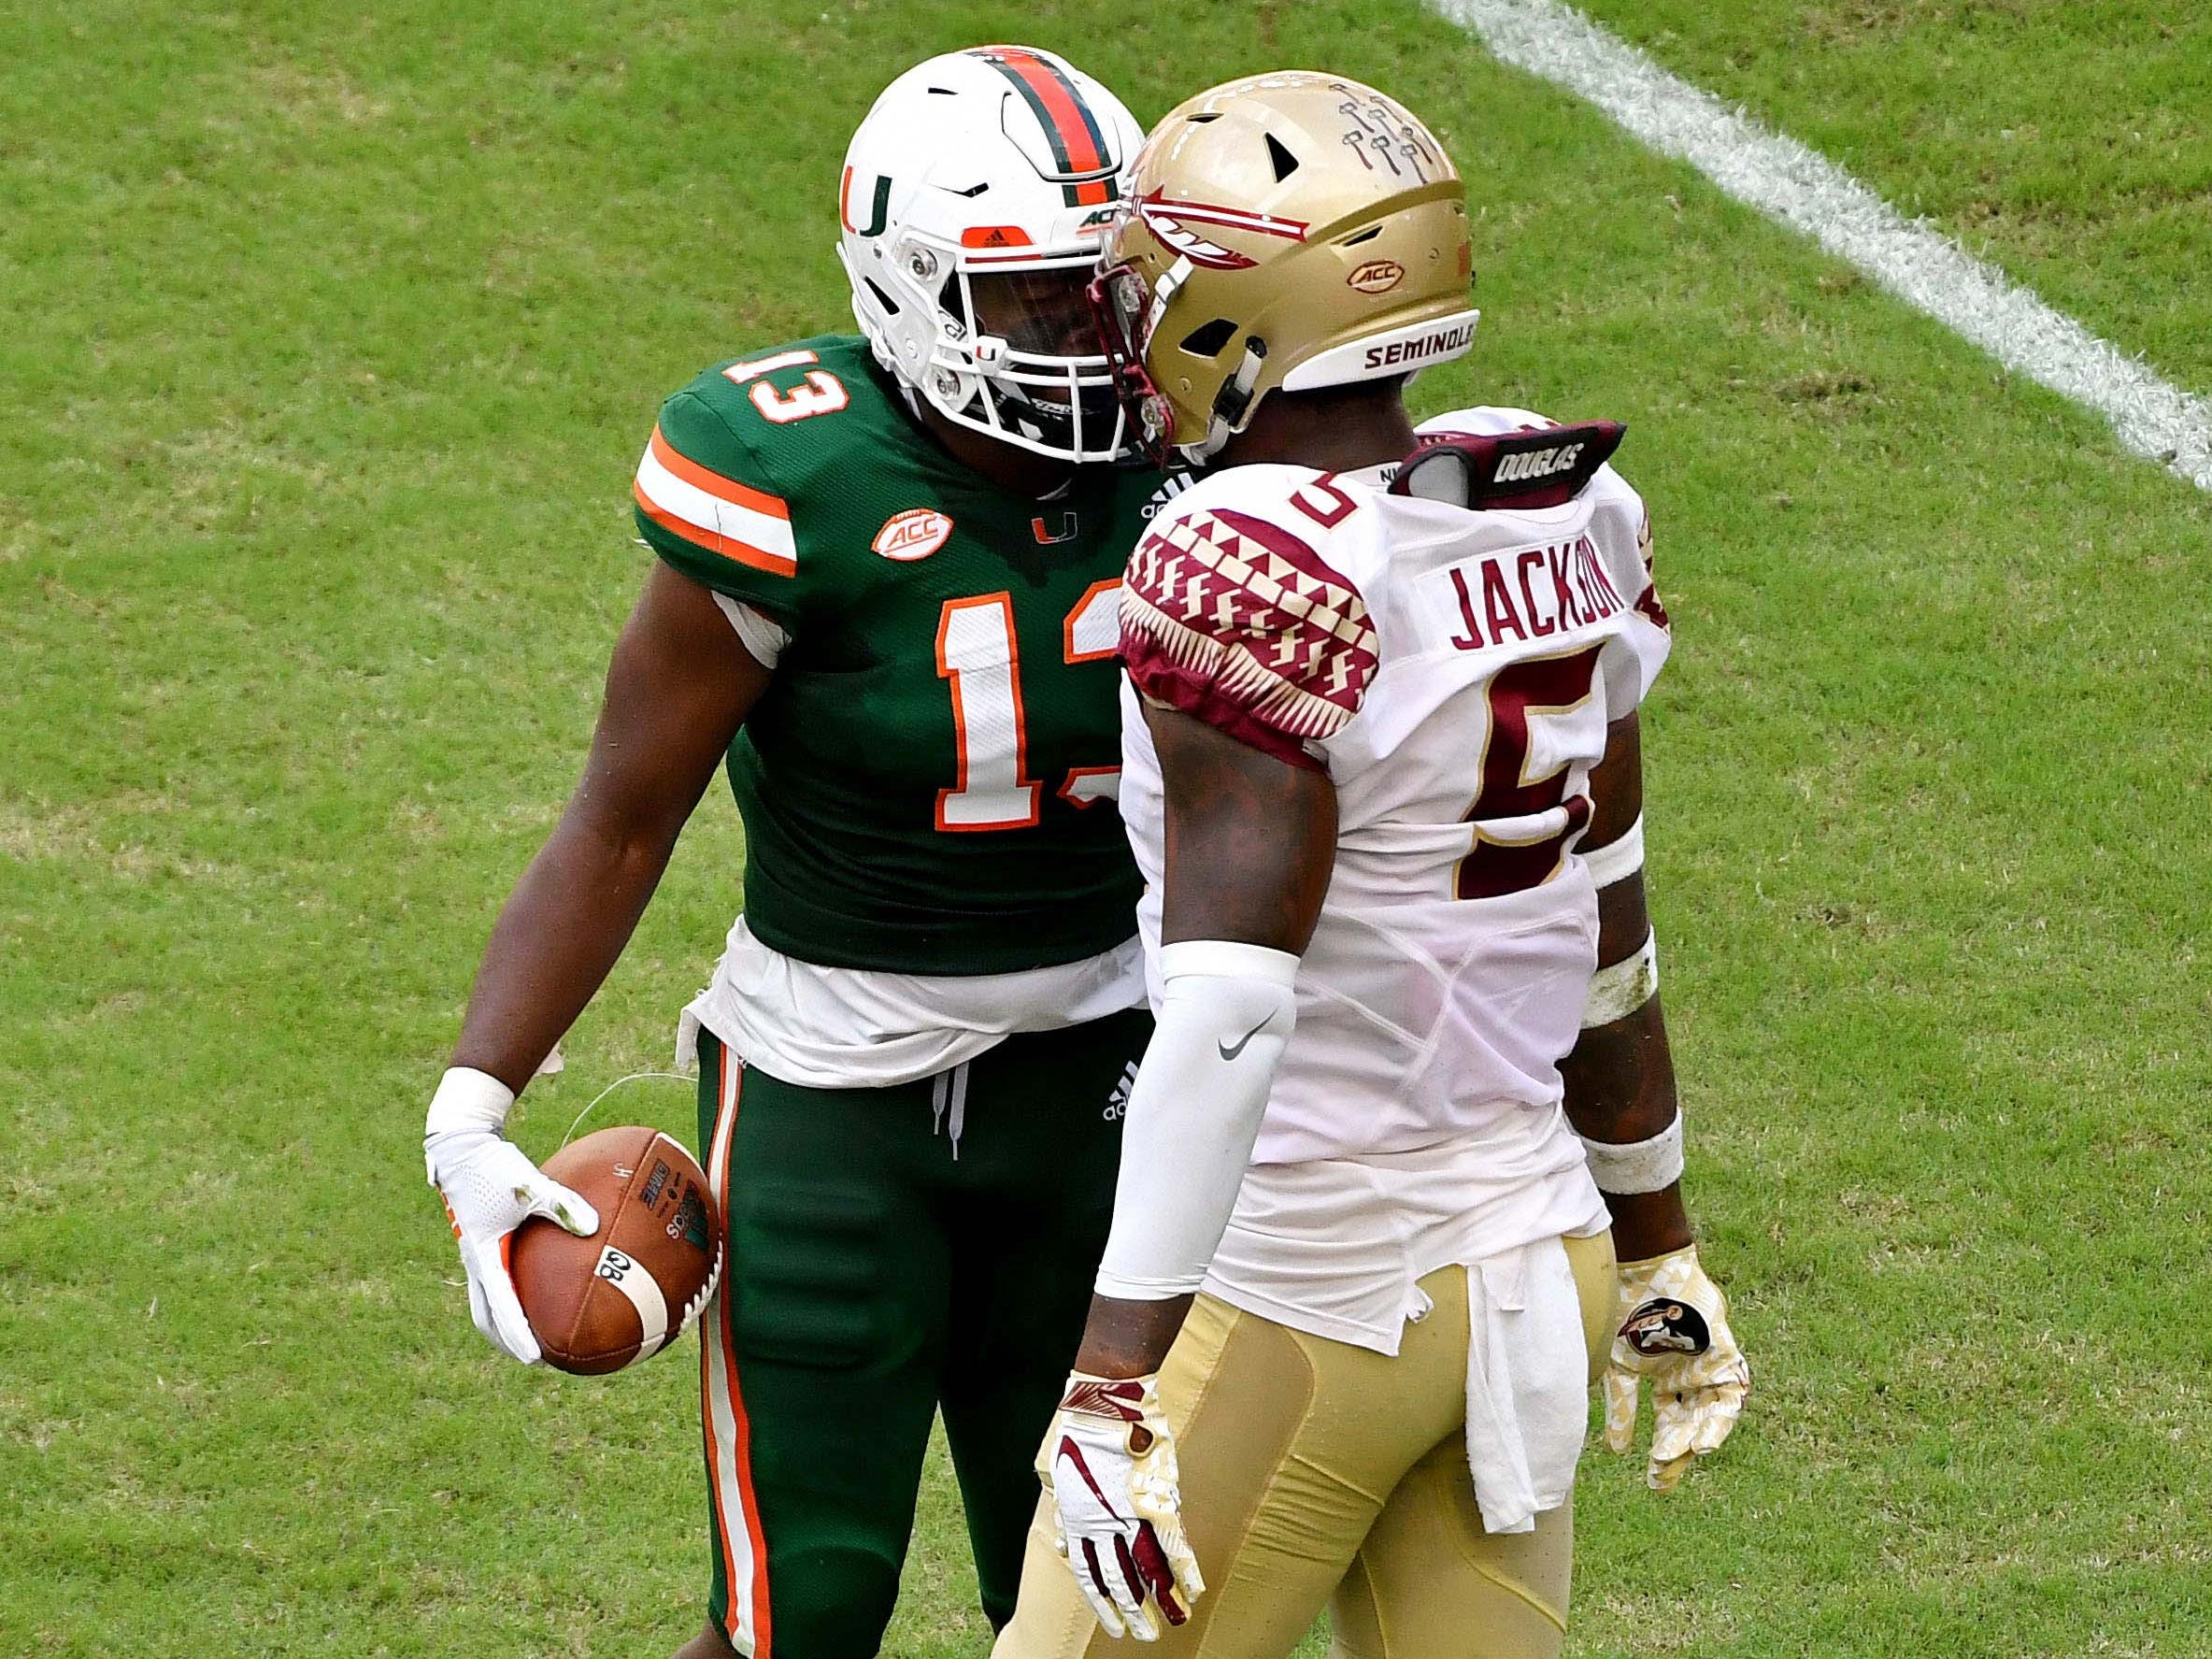 Miami Hurricanes running back DeeJay Dallas and Florida State Seminoles linebacker Dontavious Jackson both exchange words during the first half at Hard Rock Stadium.